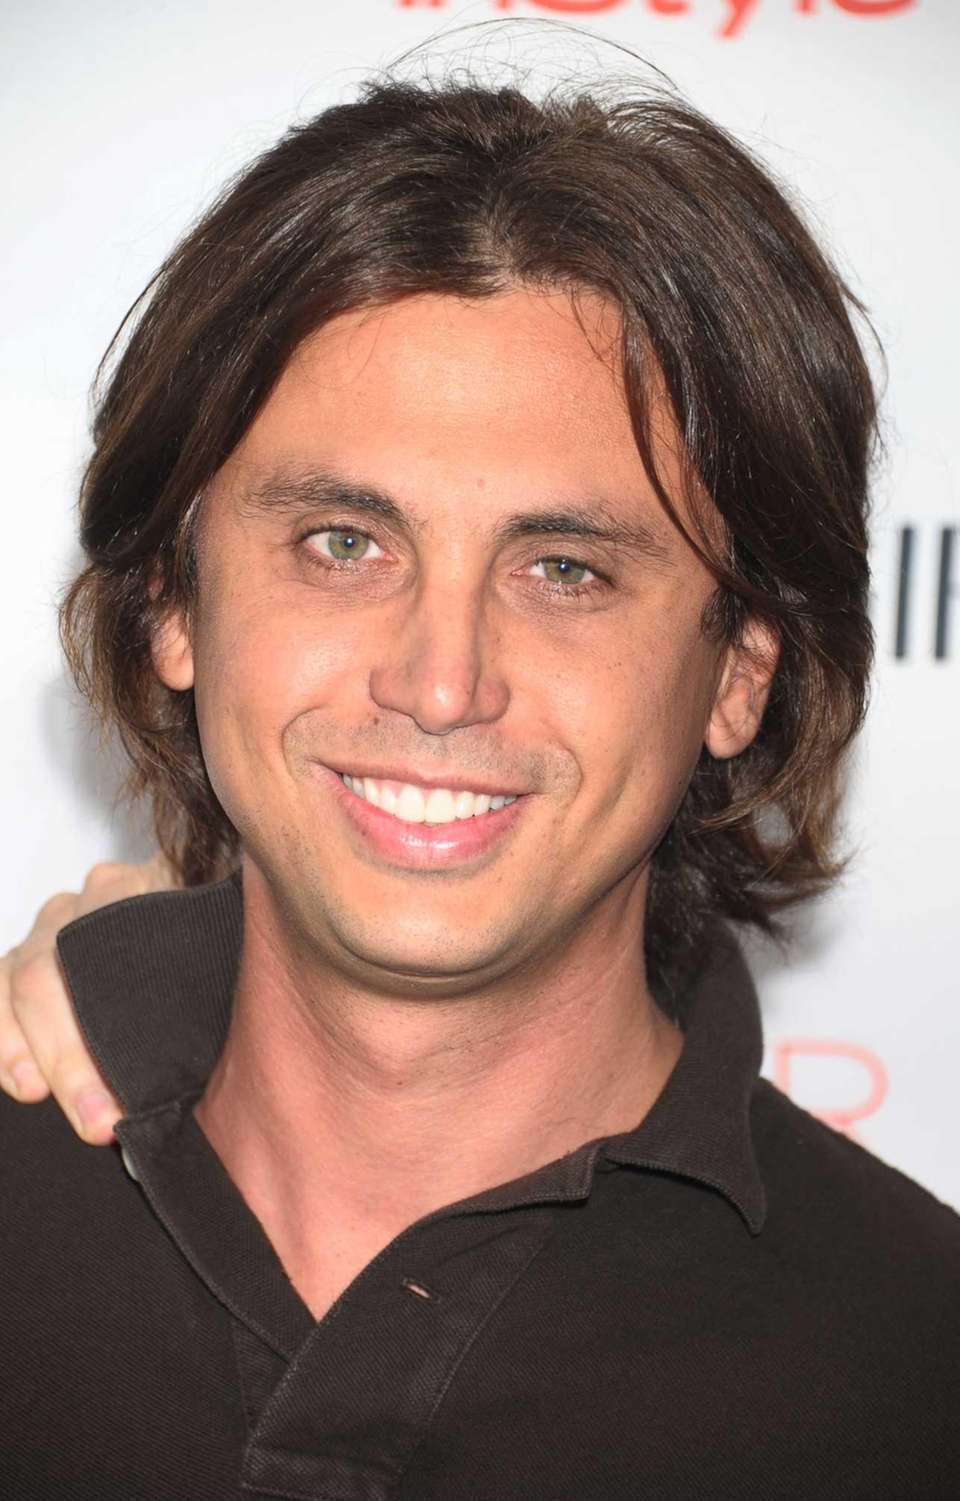 Jonathan Cheban attends Super Saturday 15 to benefit